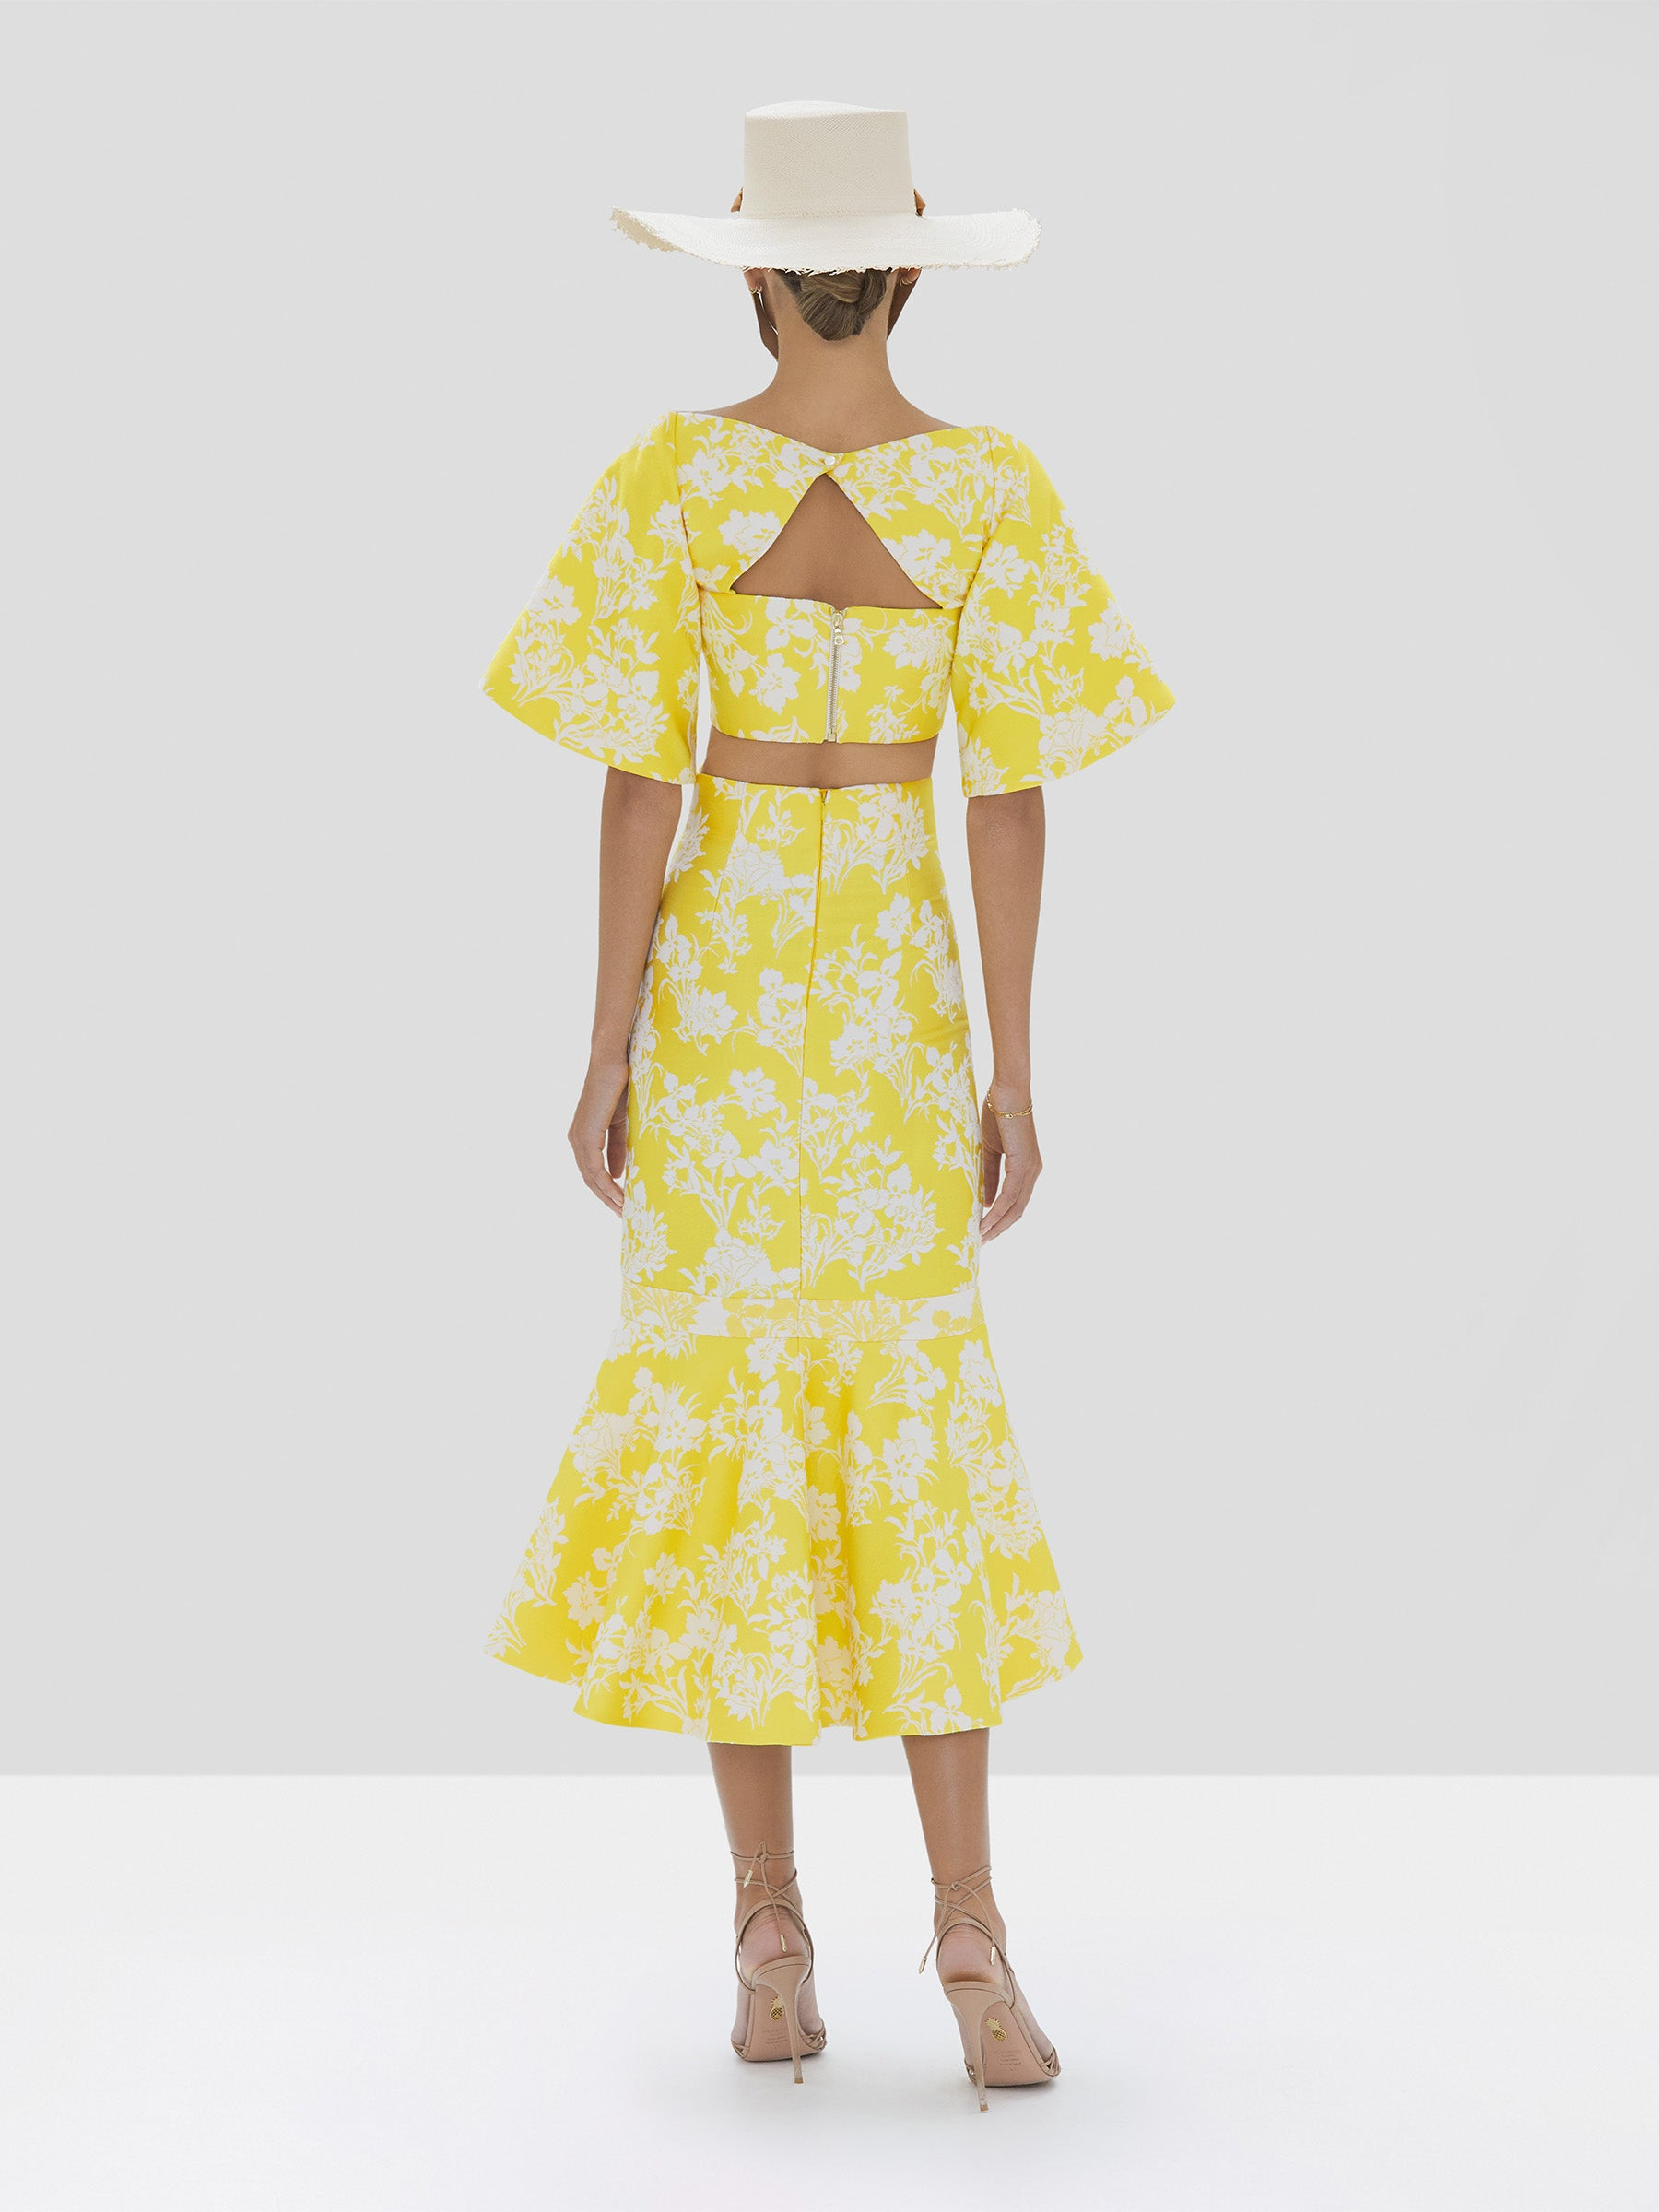 Alexis Oliana Crop Top and Ivorra Skirt in Citrus Jacquard from Spring Summer 2020 Collection - Rear View